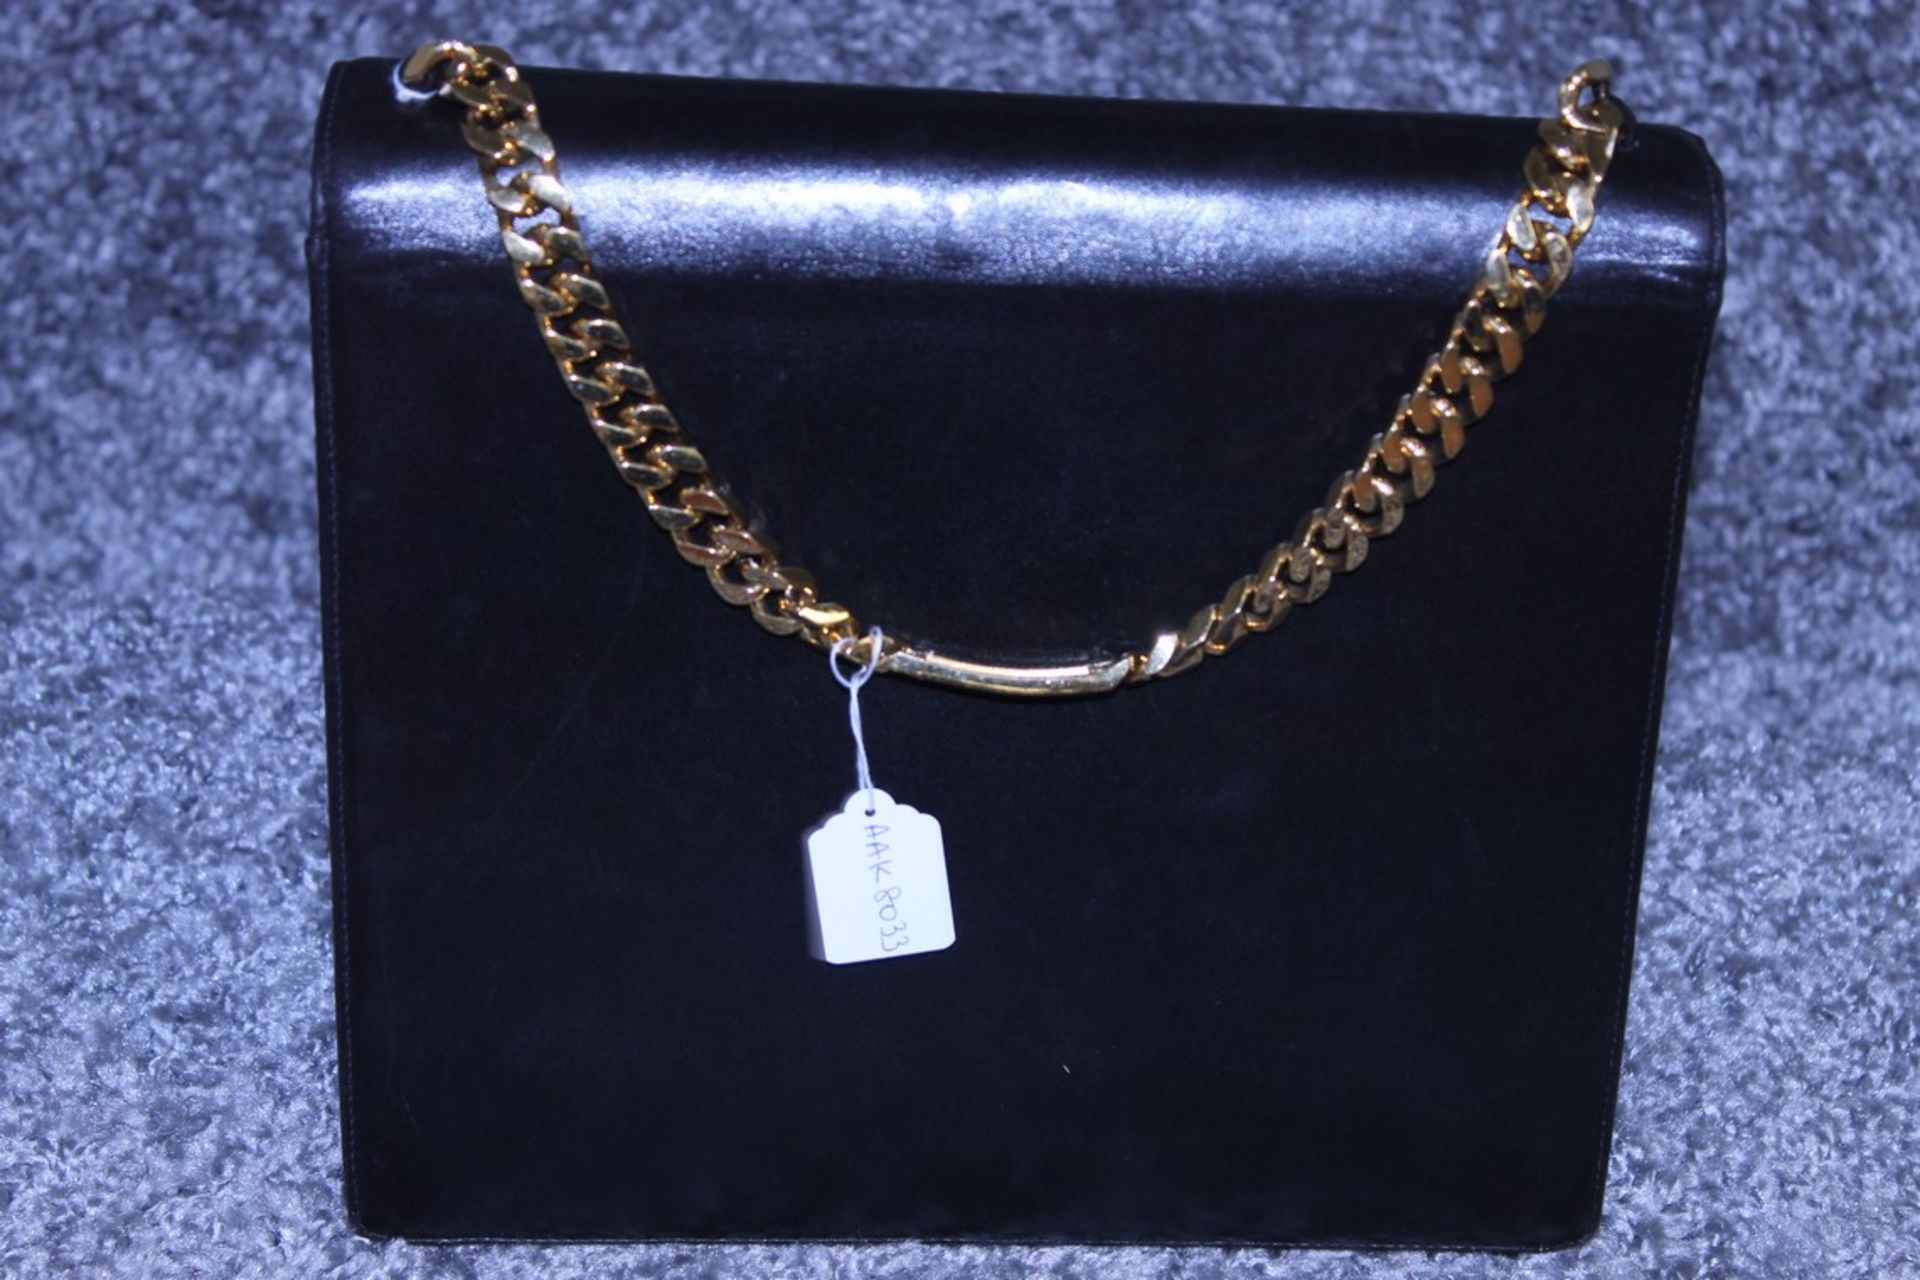 RRP £2000 Chanel Tall Logo Flap Chain Tote Shoulder Bag In Black Leather With Gold Chain Handles - Image 2 of 3